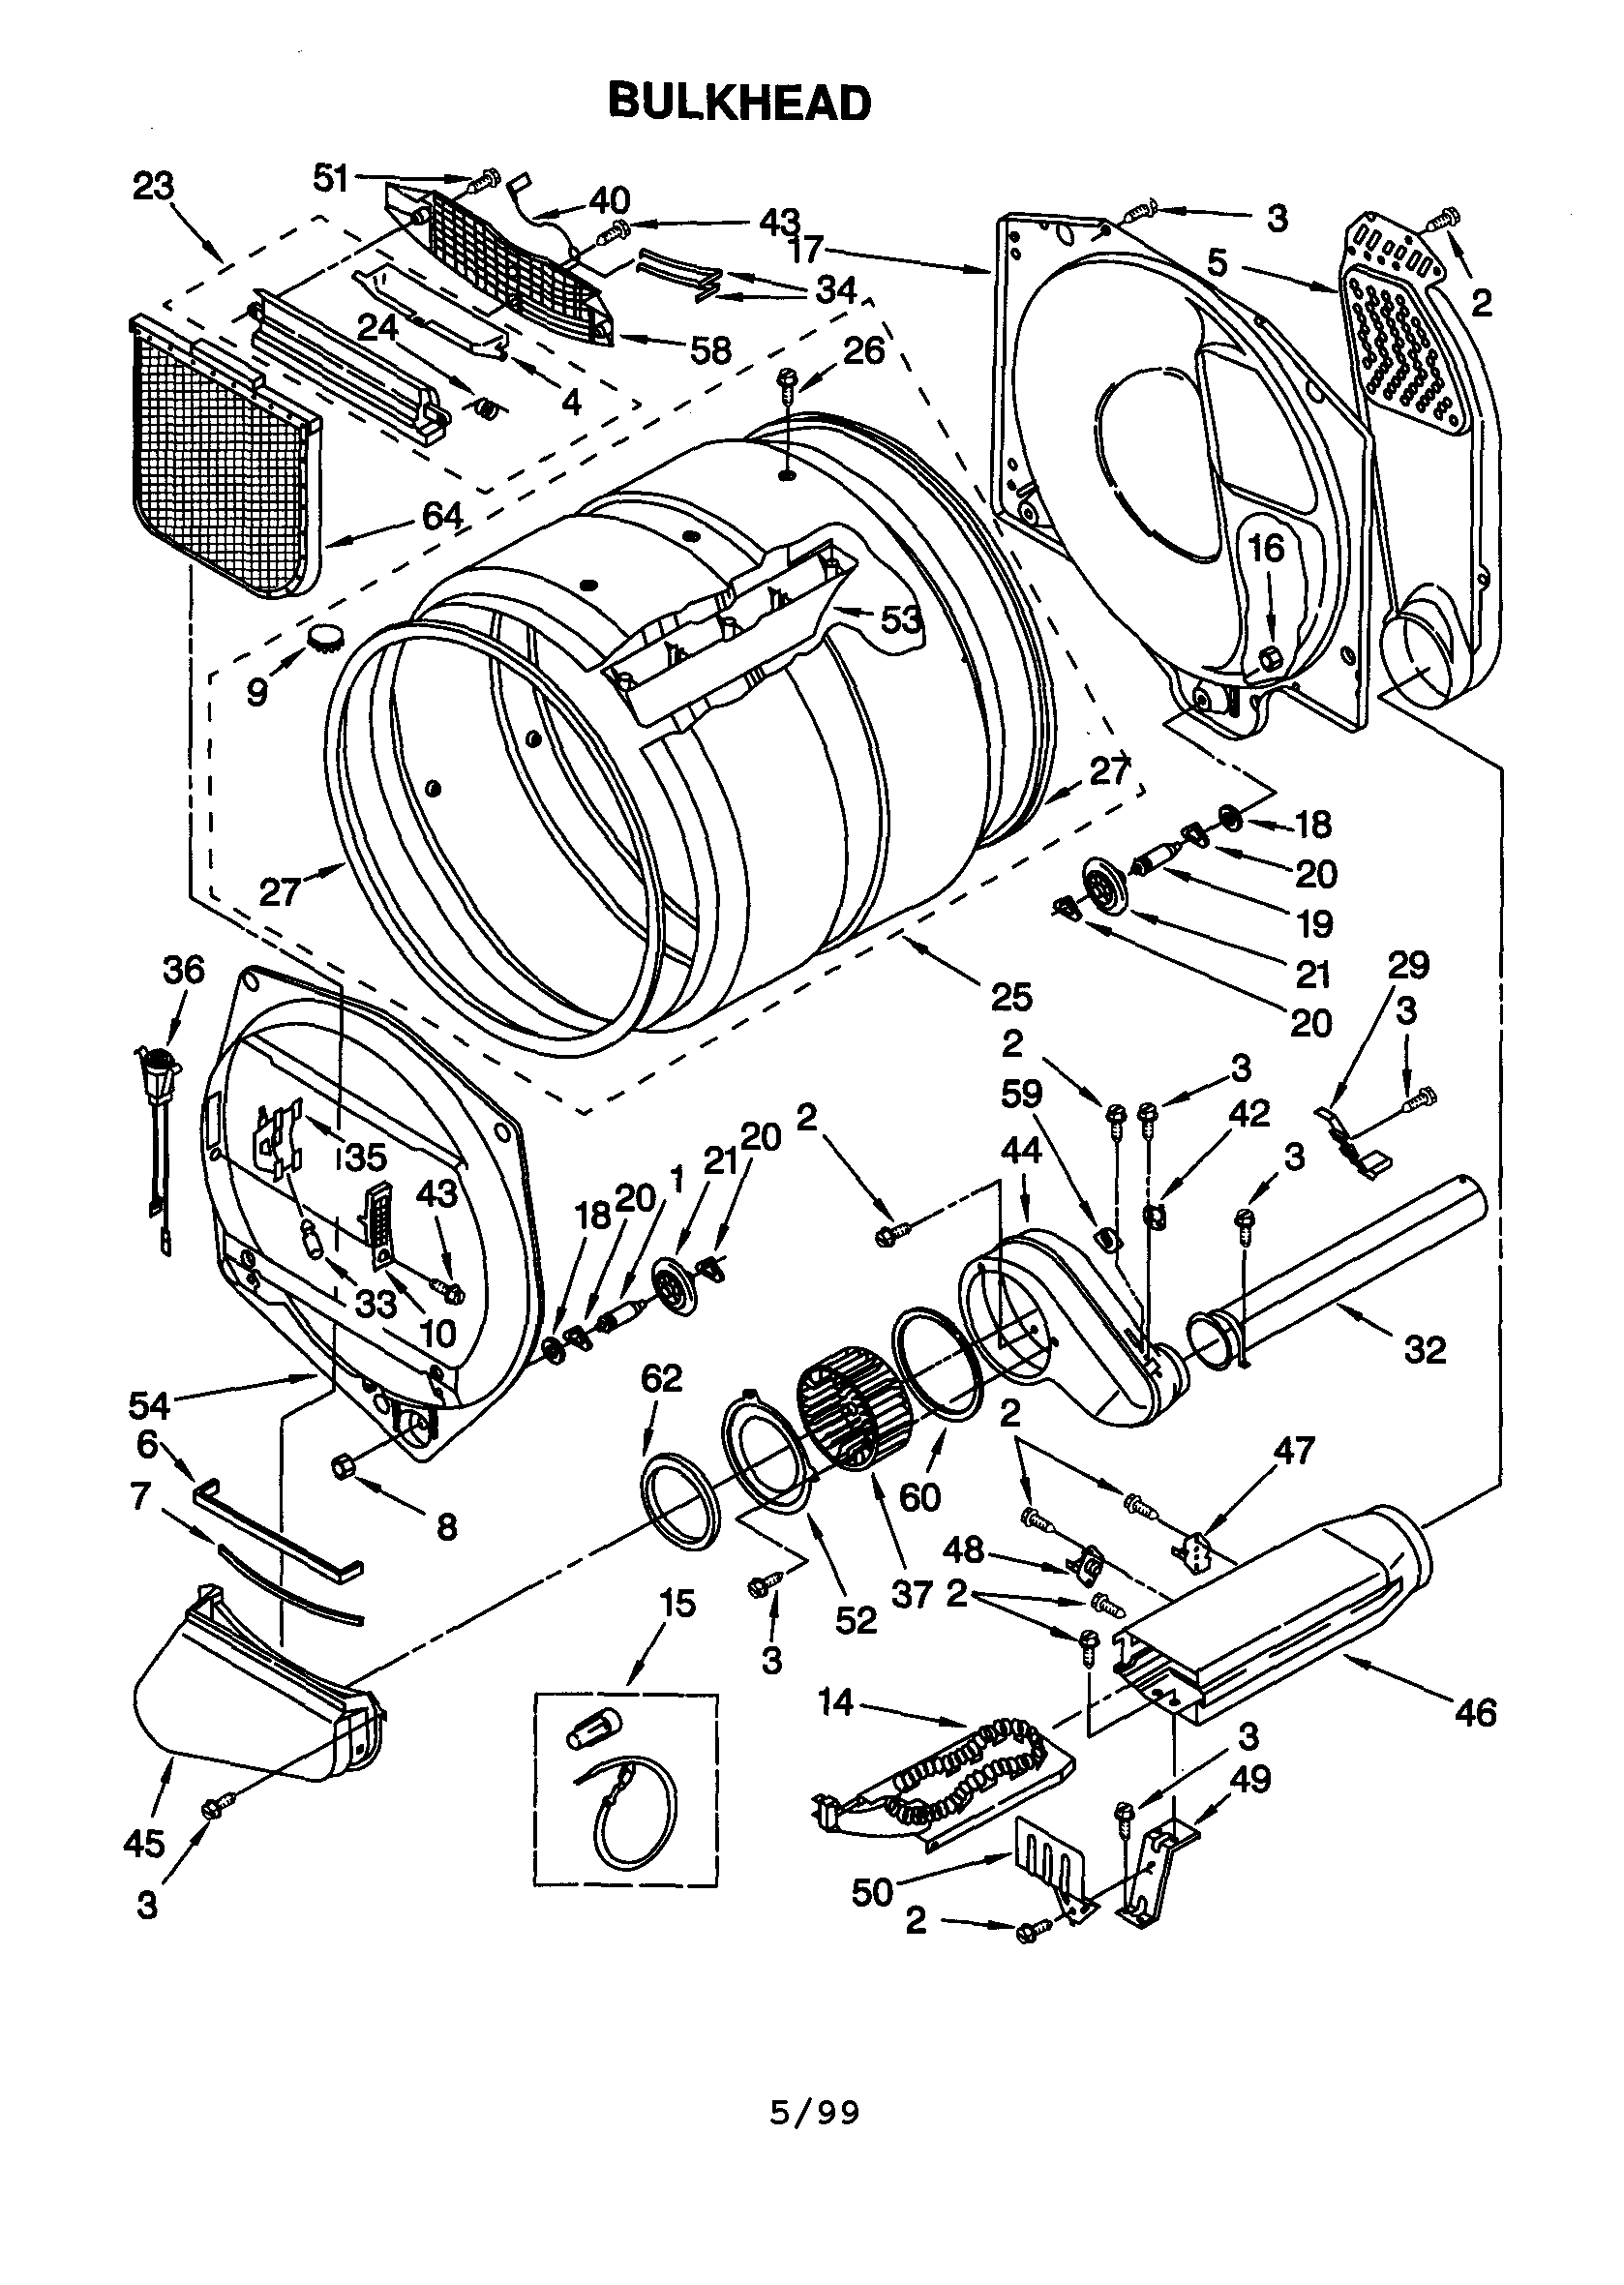 hight resolution of kenmore 90 series model 110 60912990 parts diagram dryer repair kenmore front load dryer diagram best collection electrical wiring